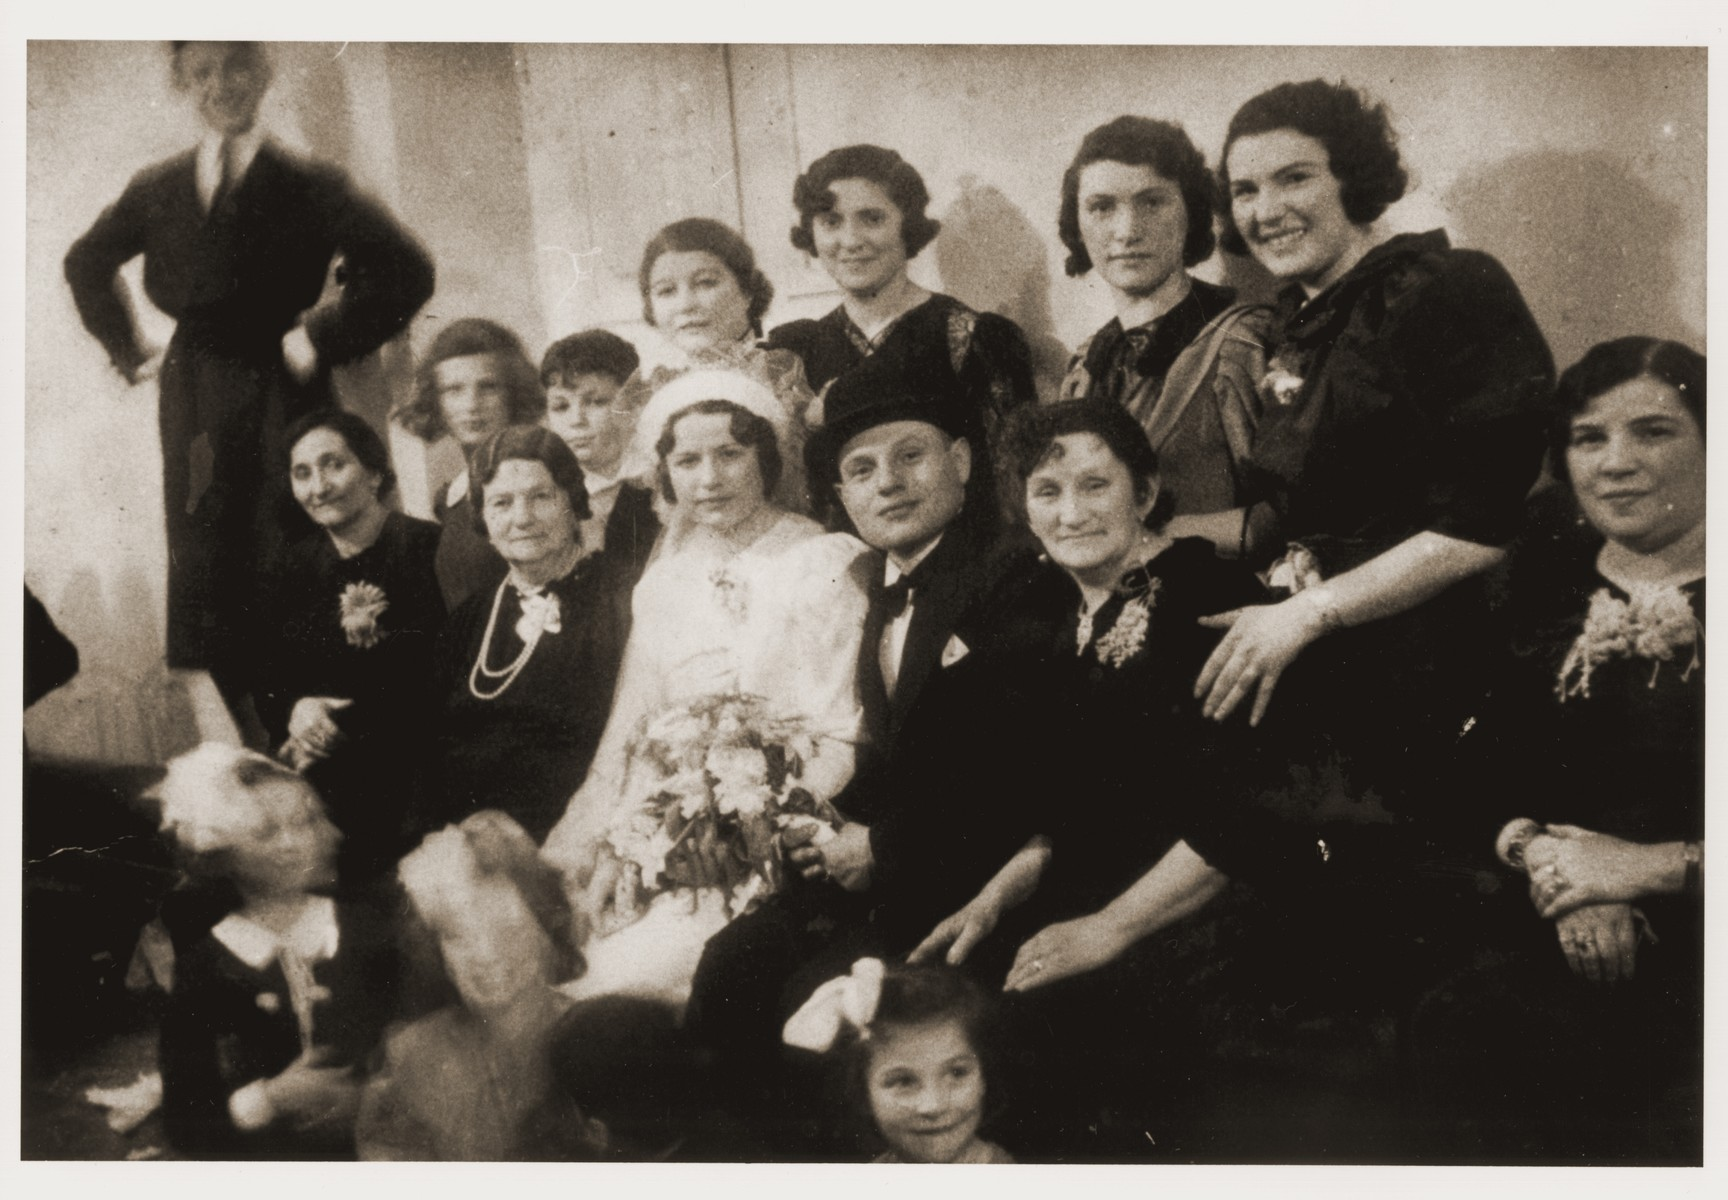 Group portrait of family and friends at the wedding of Bracha Broncia Rotsztajn and Mr. Kratka.    Standing on the far left is Aaron Rotsztajn (the donor's paternal uncle, who escaped Poland to Palestine in 1941).  In the second row, second from the left, is Roma Rotsztajn (the donor), her brother, Dawid; an aunt; Bracha Rotsztajn; Rozia Rotsztajn and Ela Rotsztajn.  In the front row, second from the left is Malka Rotsztajn (the donor's great grandmother); Bracha and her husband and Dwora (Rozmaryn) Rotsztajn (the donor's grandmother).  Aaron and Roma were the only survivors of this group.